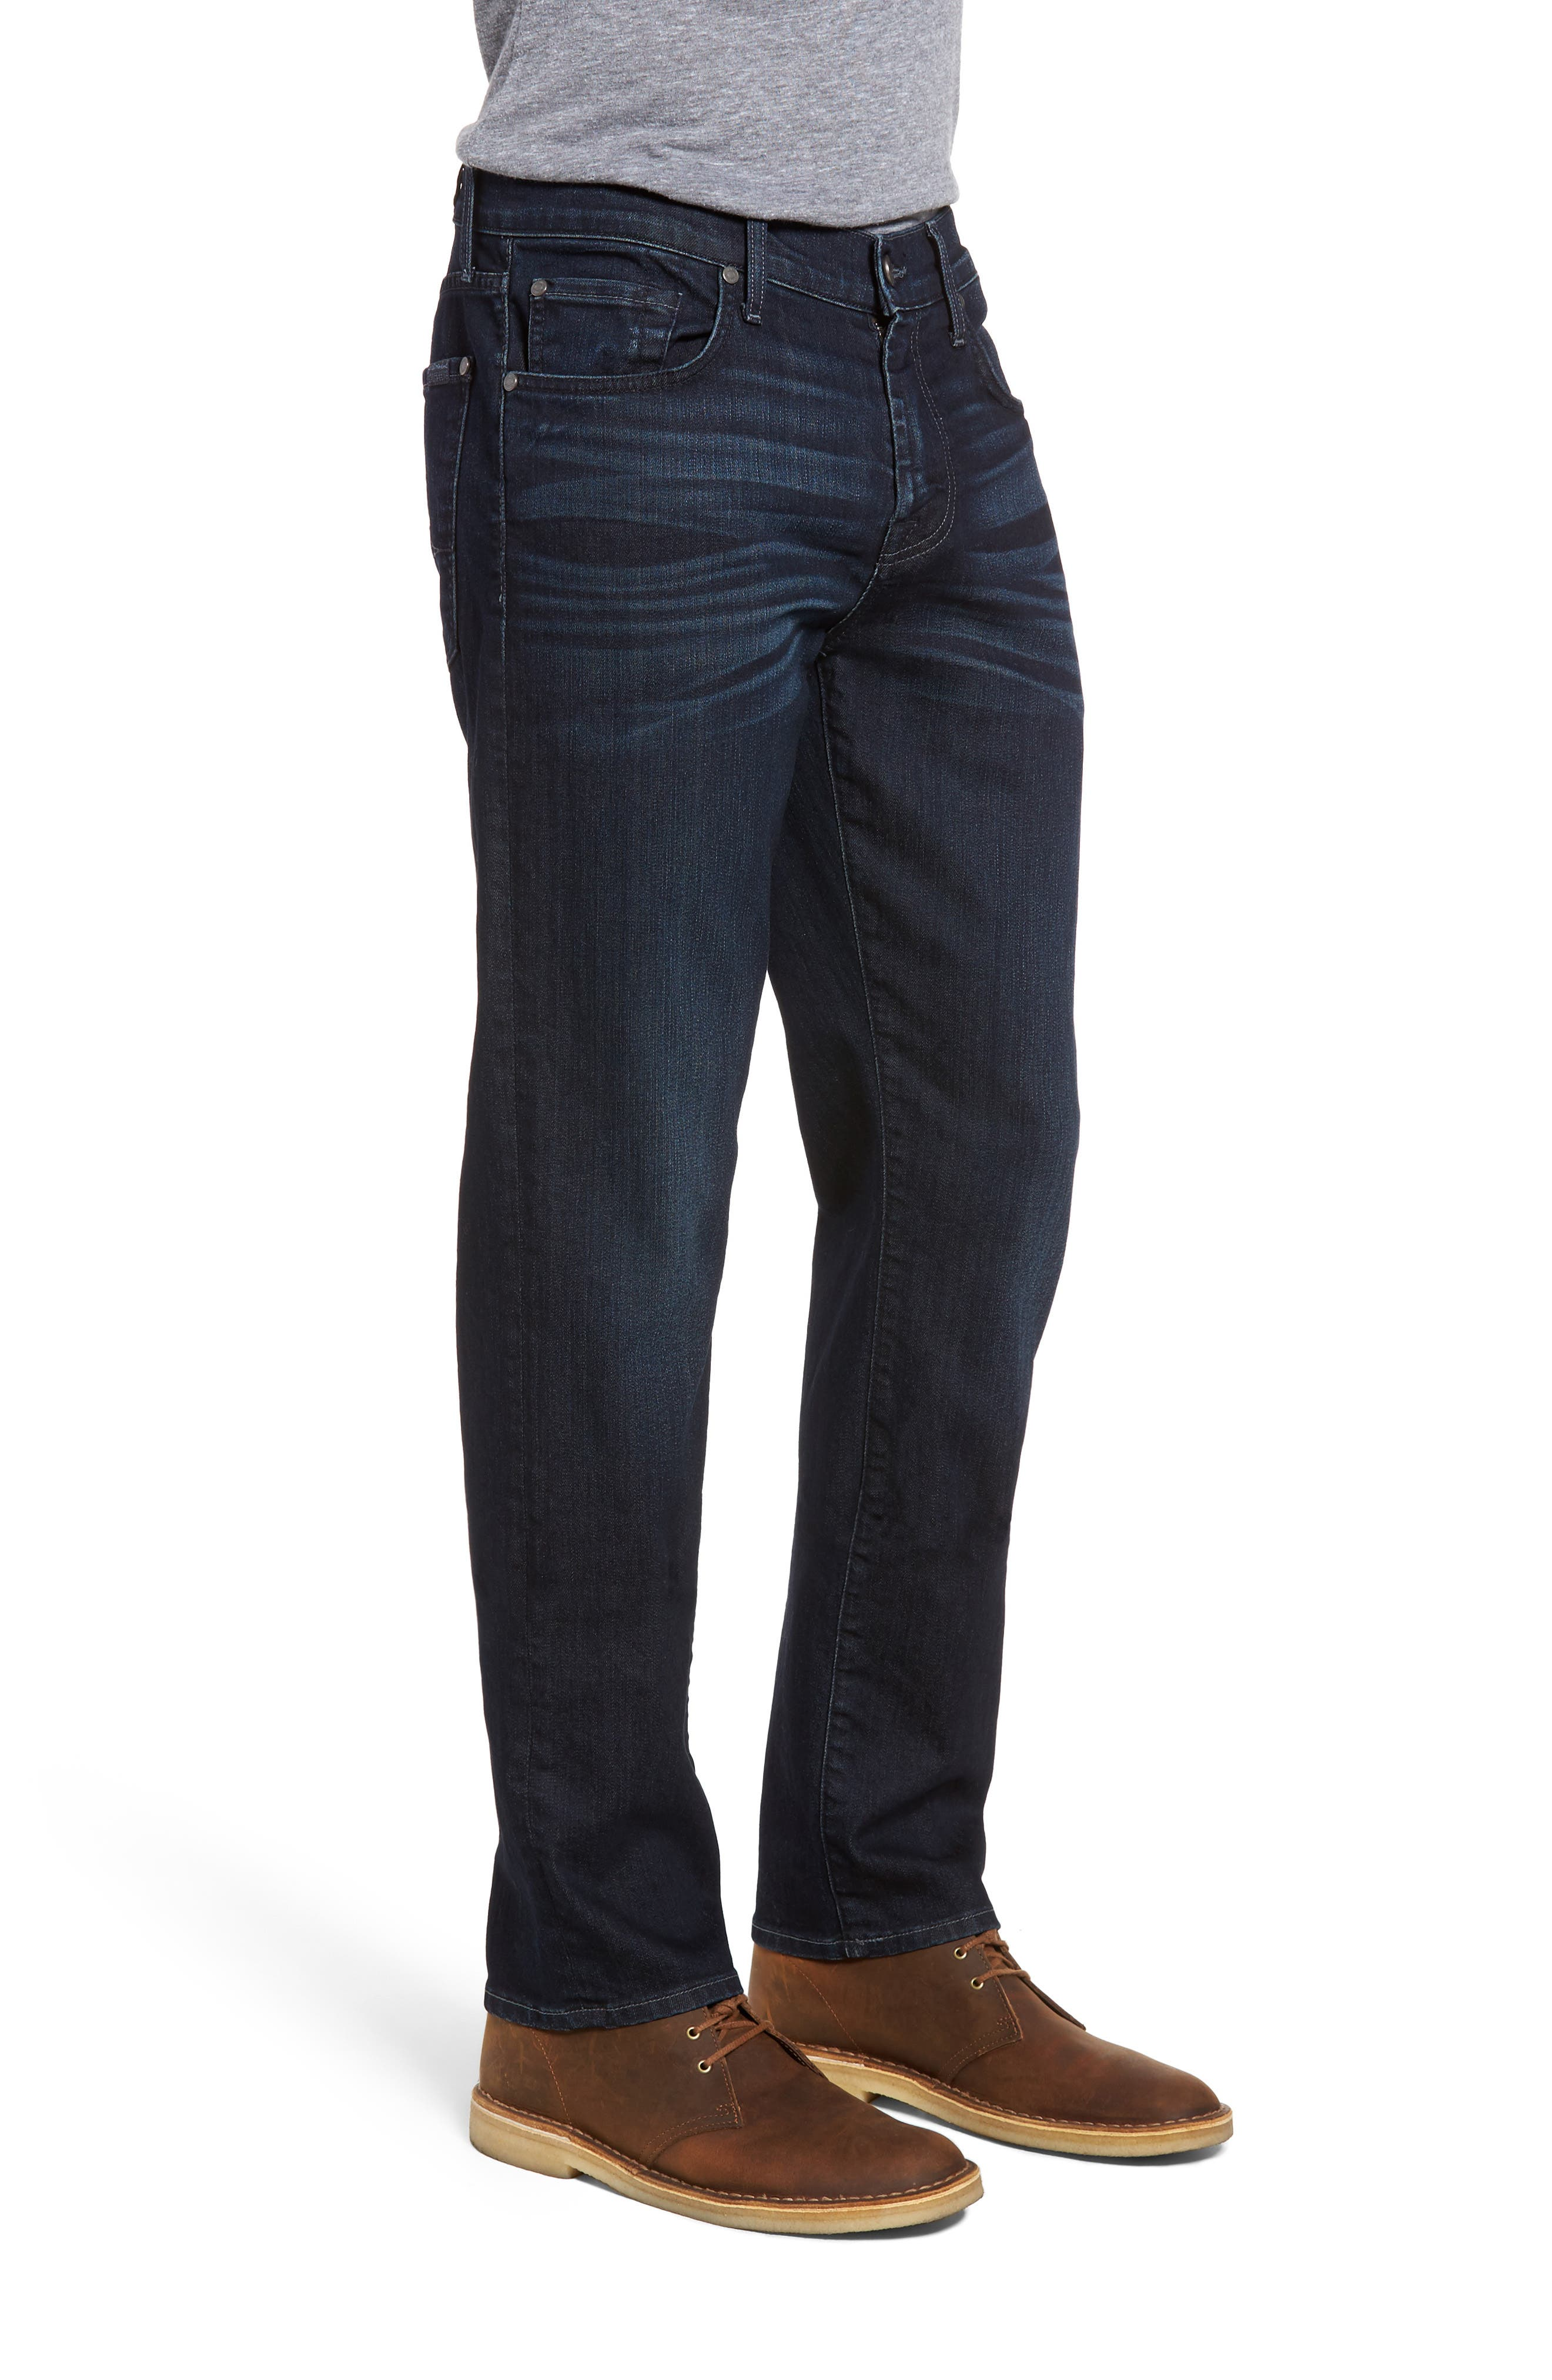 Alternate Image 3  - 7 For All Mankind® Slimmy AirWeft Slim Fit Jeans (Perennial)